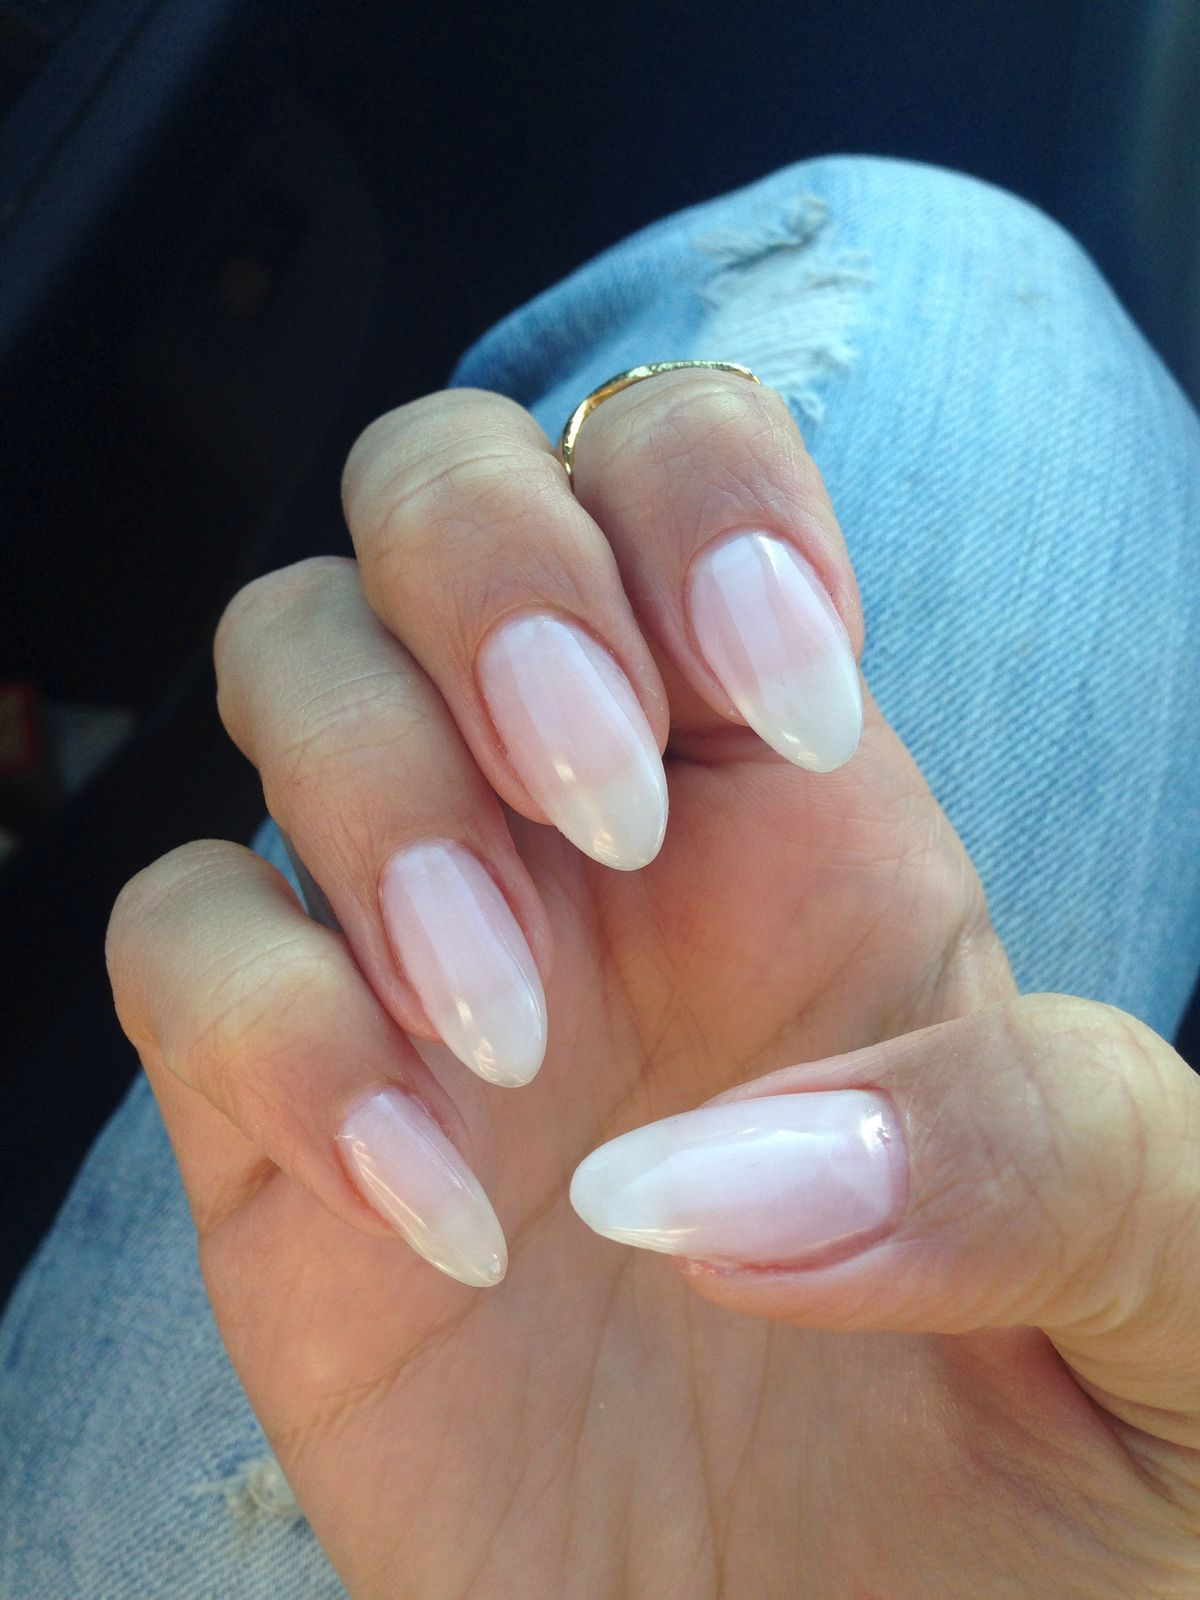 Pin by Mary Funches on Nails   Pinterest